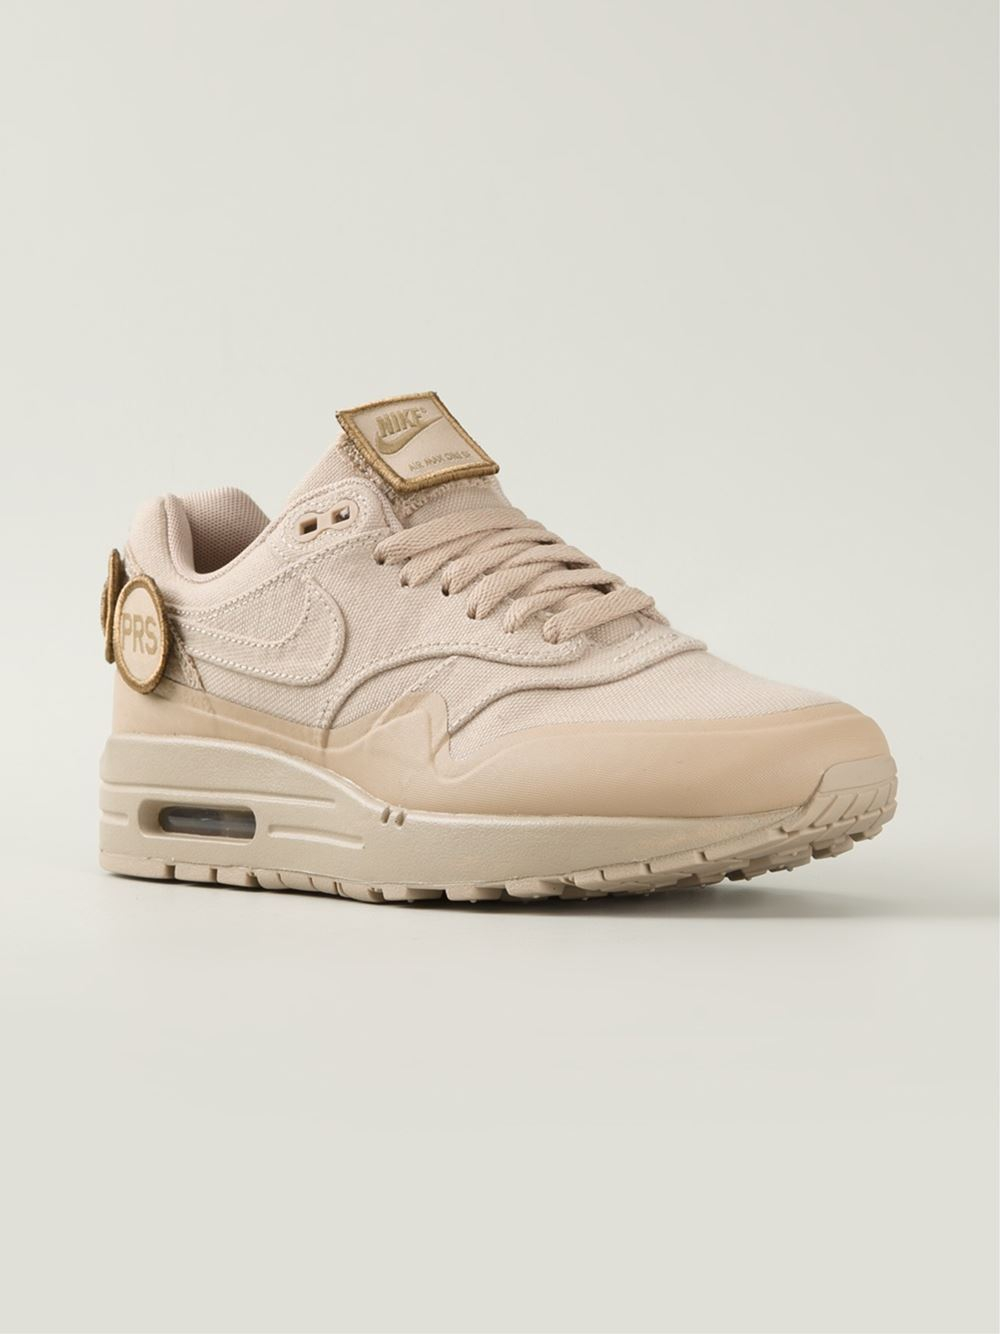 on sale 9db76 13f34 ... ireland nike air max 1 sneakers in natural for men lyst c855d 78fd5